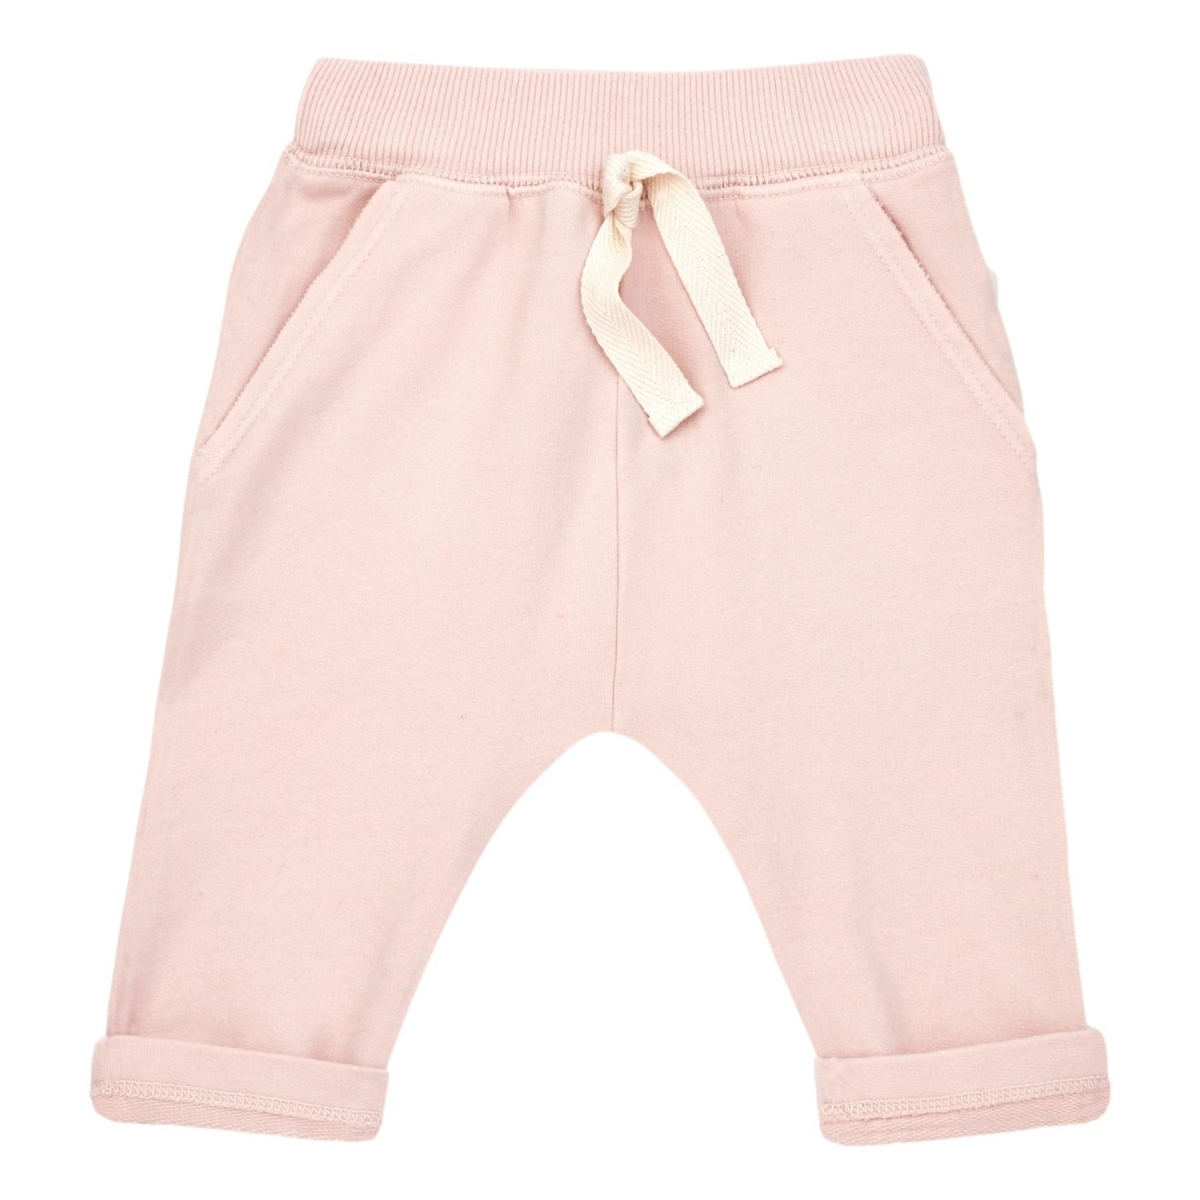 1 + in the family - Jofre Long Pants Rose - 1